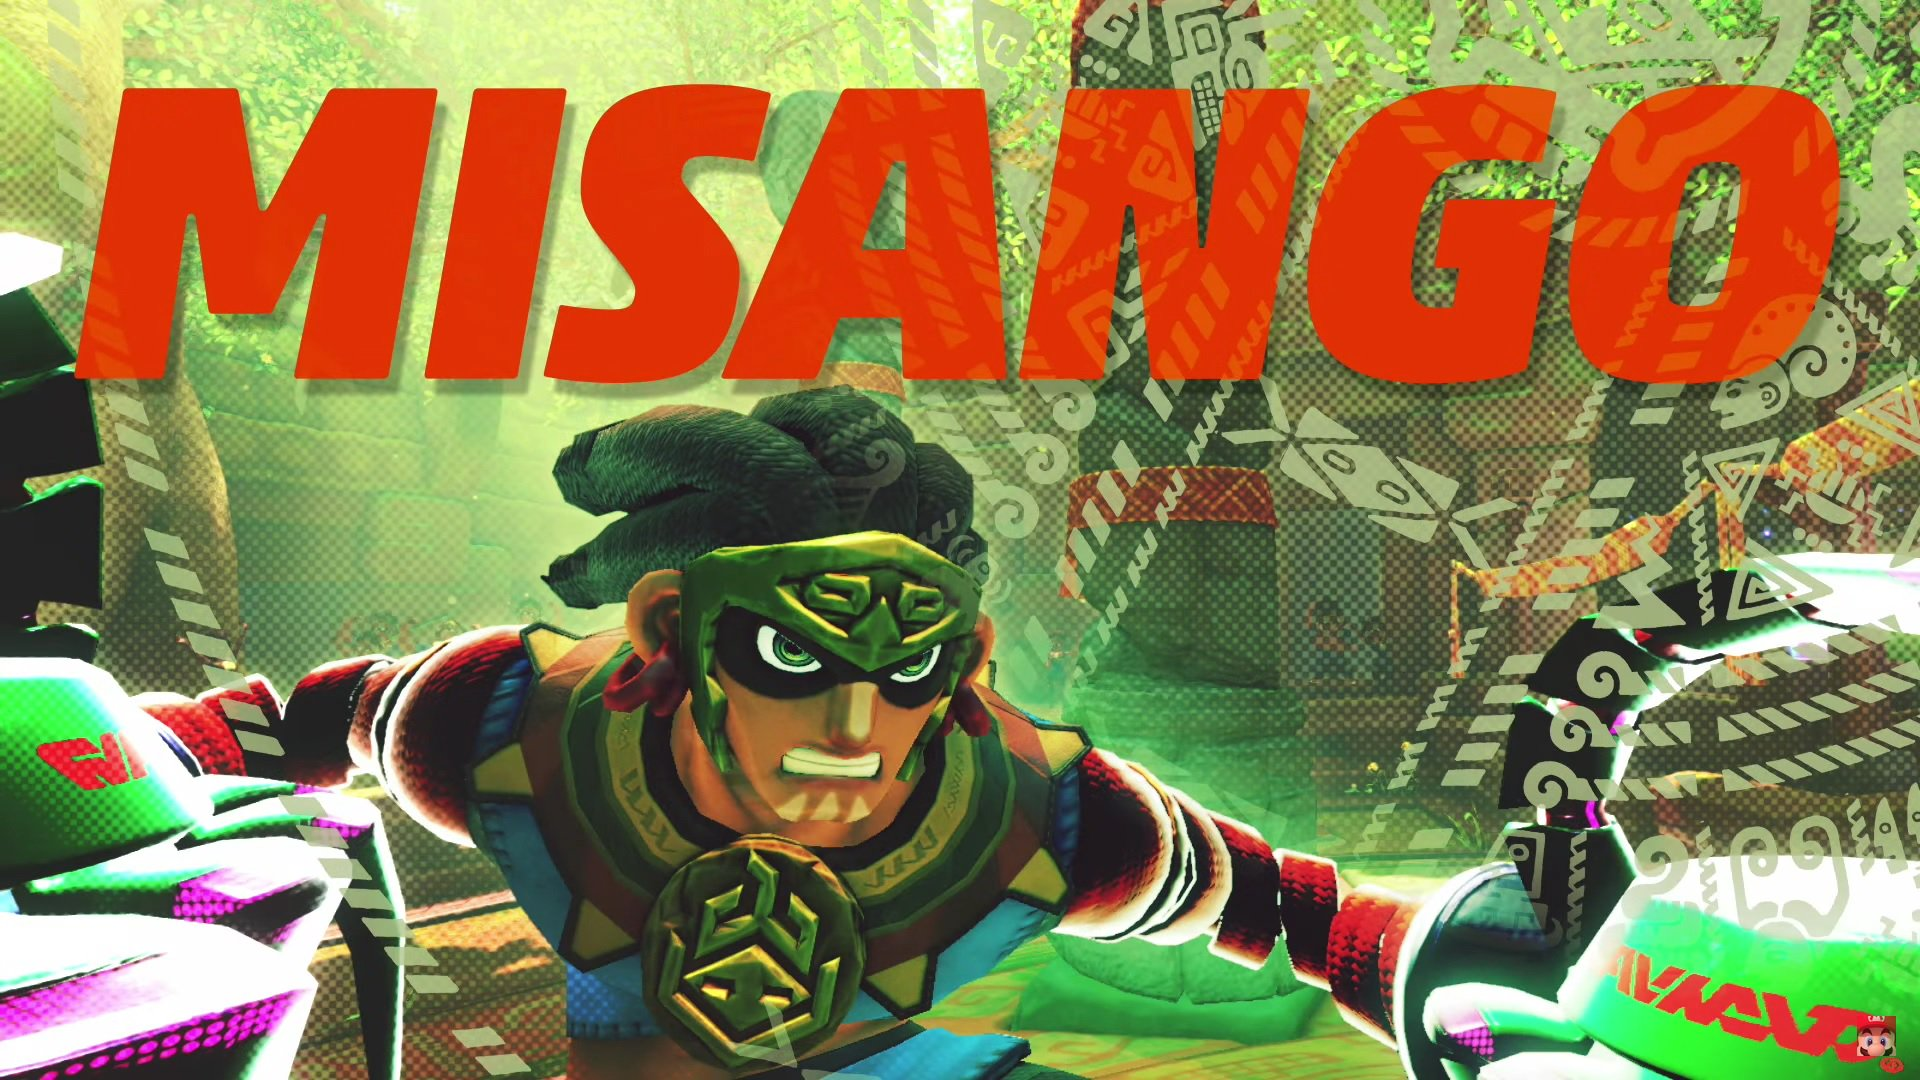 ARMS' 4.0 update introduces Misango to the battle screenshot